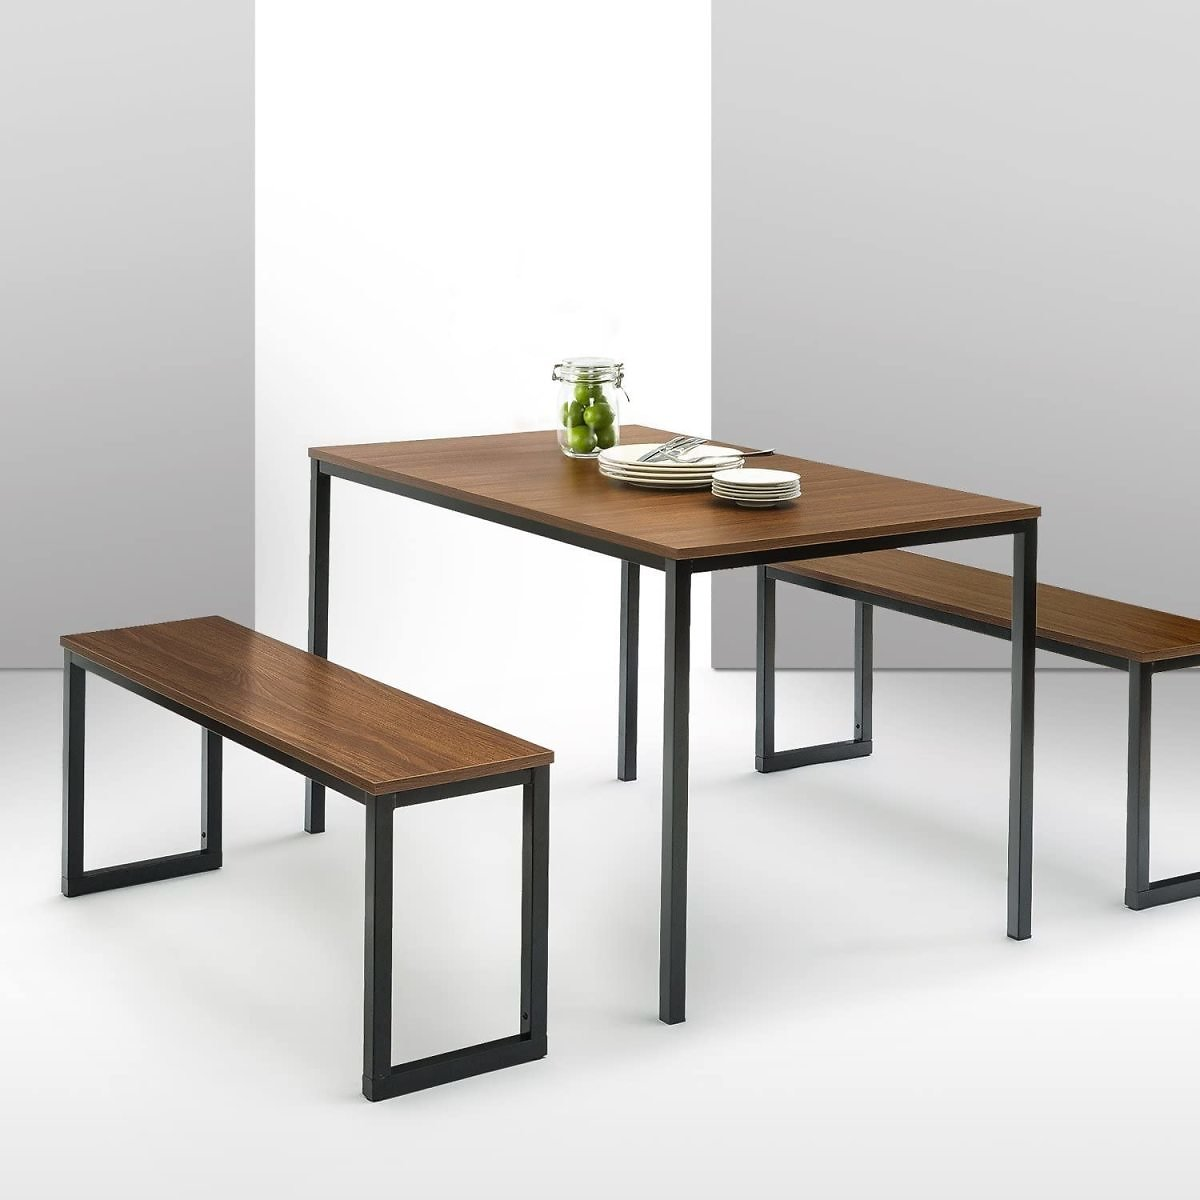 Soho Dining Table with Two Benches / 3 Piece Set